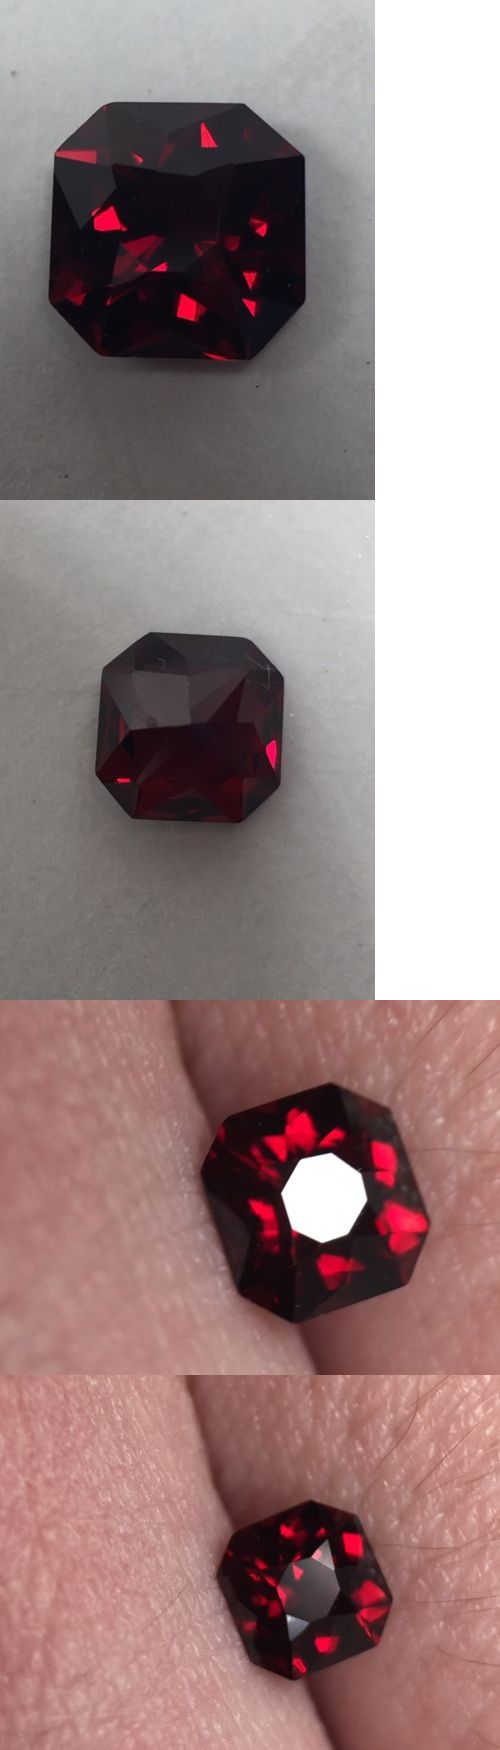 Spinel 110873: 0.52Ct Stunning Flanders Cut Red Spinel -> BUY IT NOW ONLY: $150 on eBay!